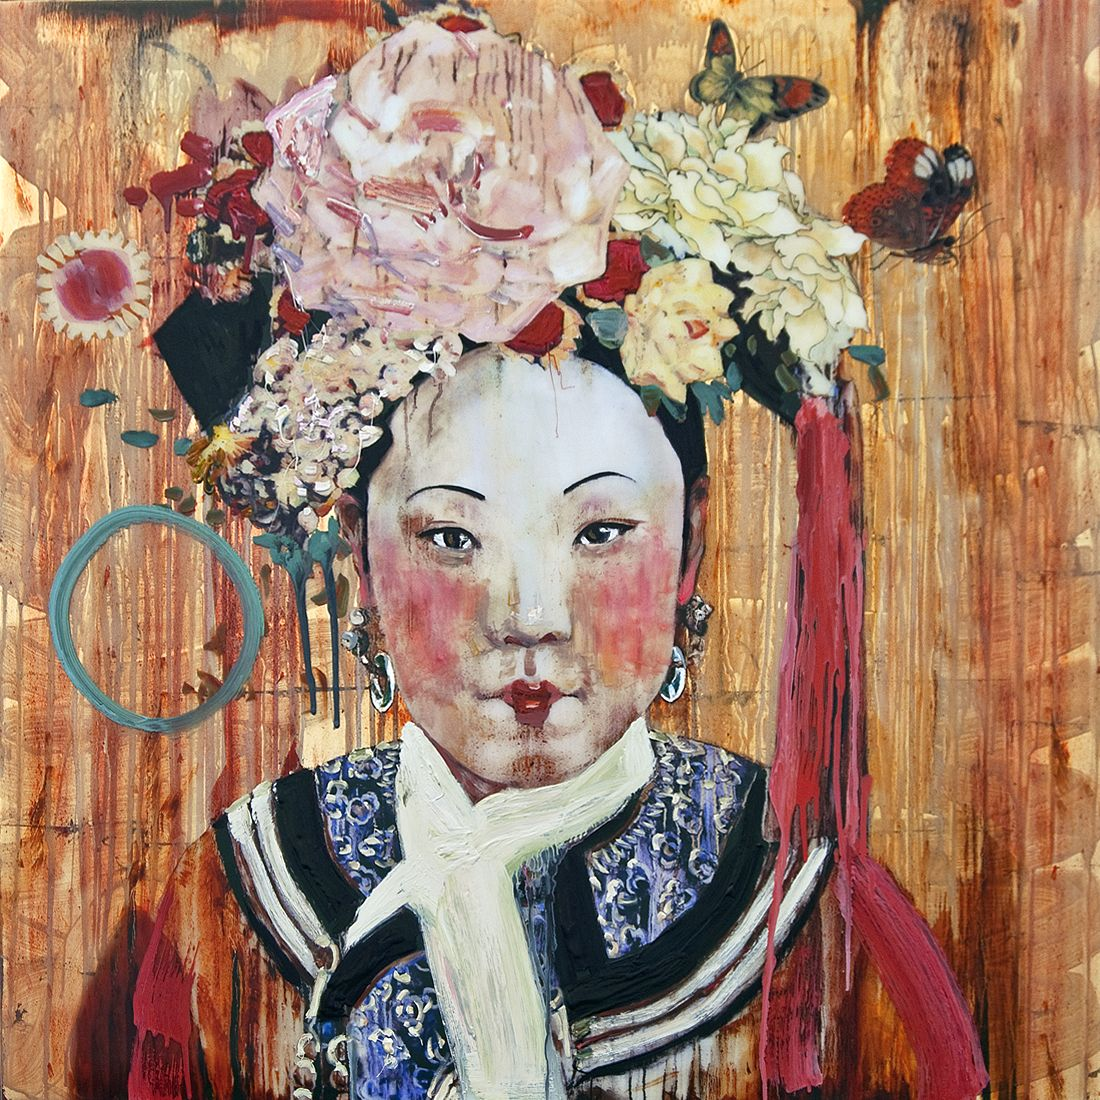 Hung Liu Cherry Lips Rhapsody Iv 2012 Mixed Media On Panel 41 X 41 Hung Liu Social Art Chinese Art Hung Liu